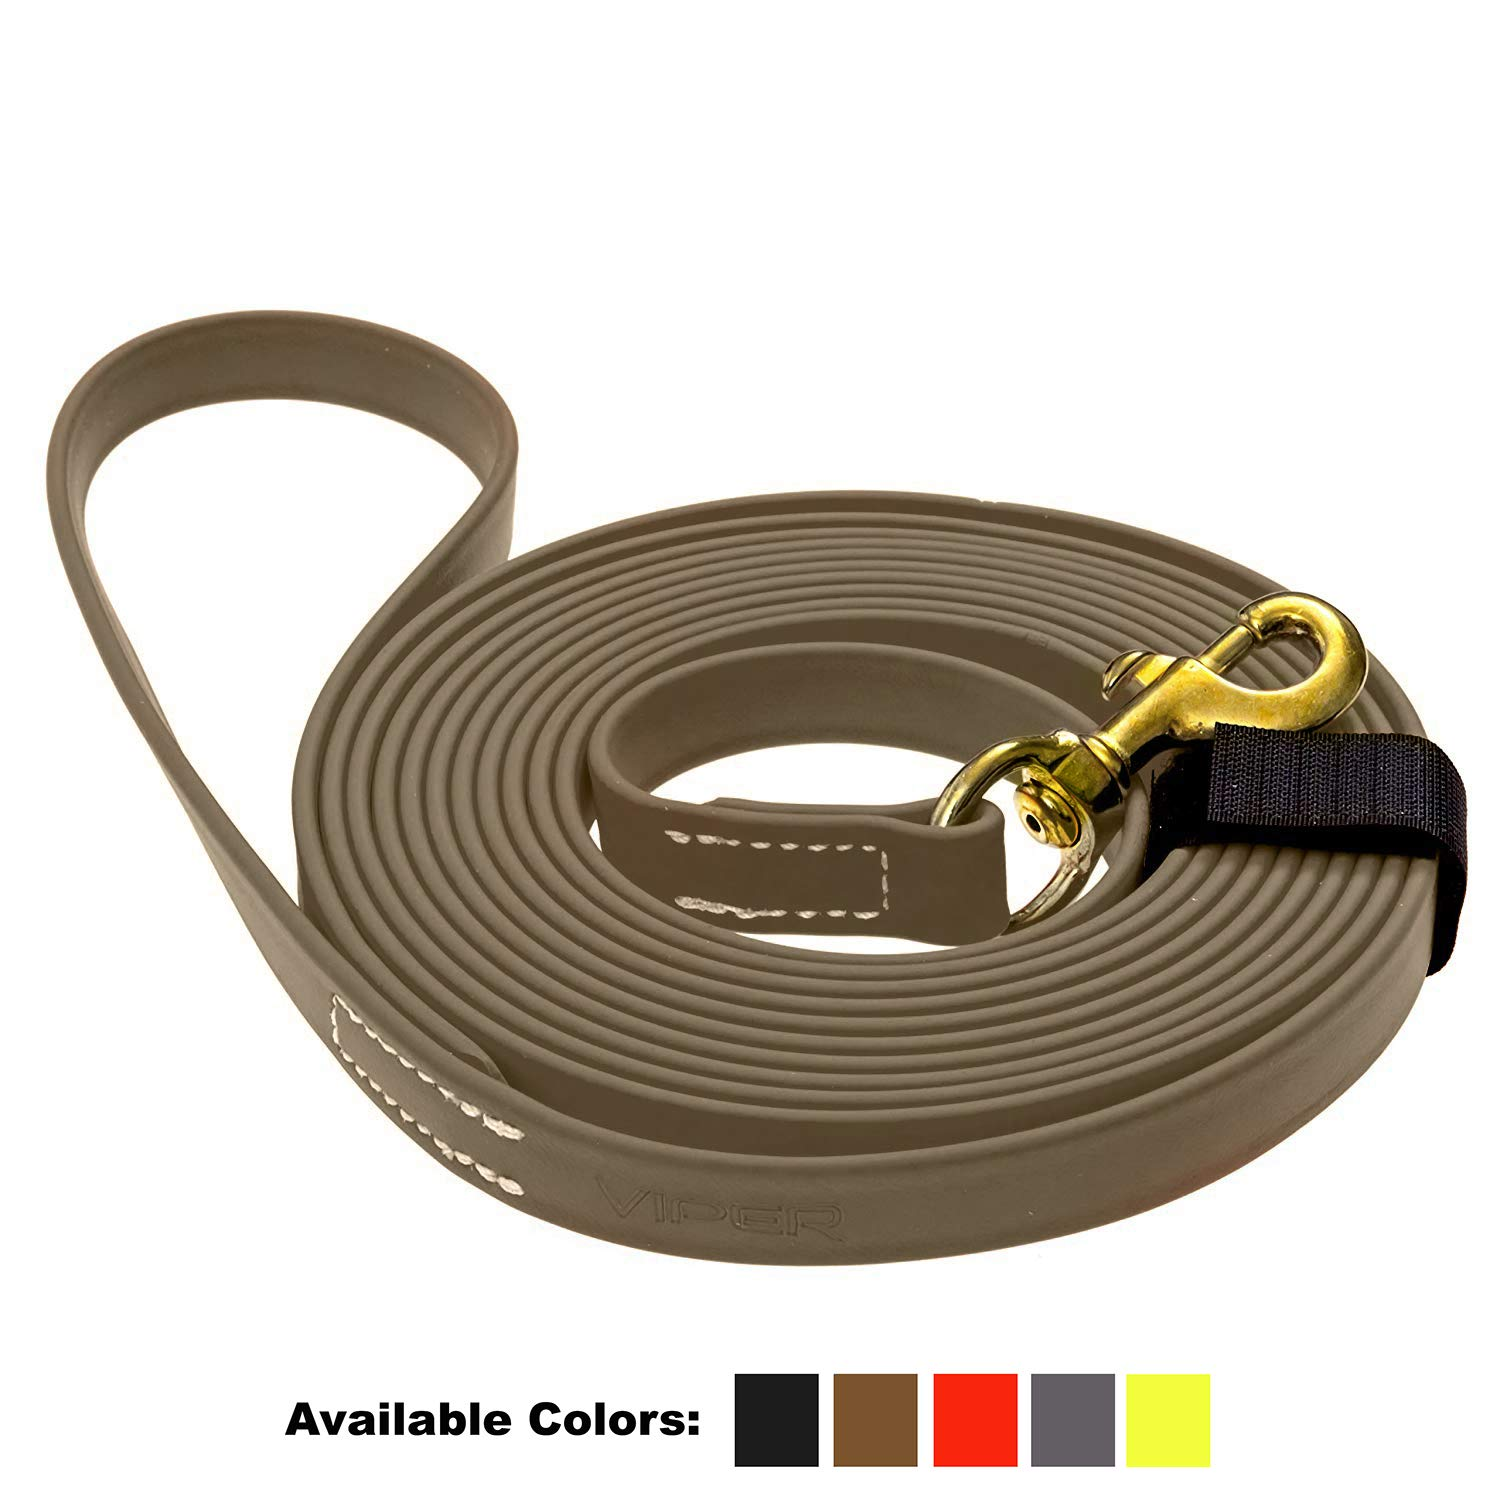 Viper Biothane K9 Working Dog Leash Waterproof Lead for Tracking Training Schutzhund Odor-Proof Long Line with Solid Brass Snap for Puppy Medium and Large Dogs 0.75 in Wide by 33 ft Long Coyote Brown by Viper